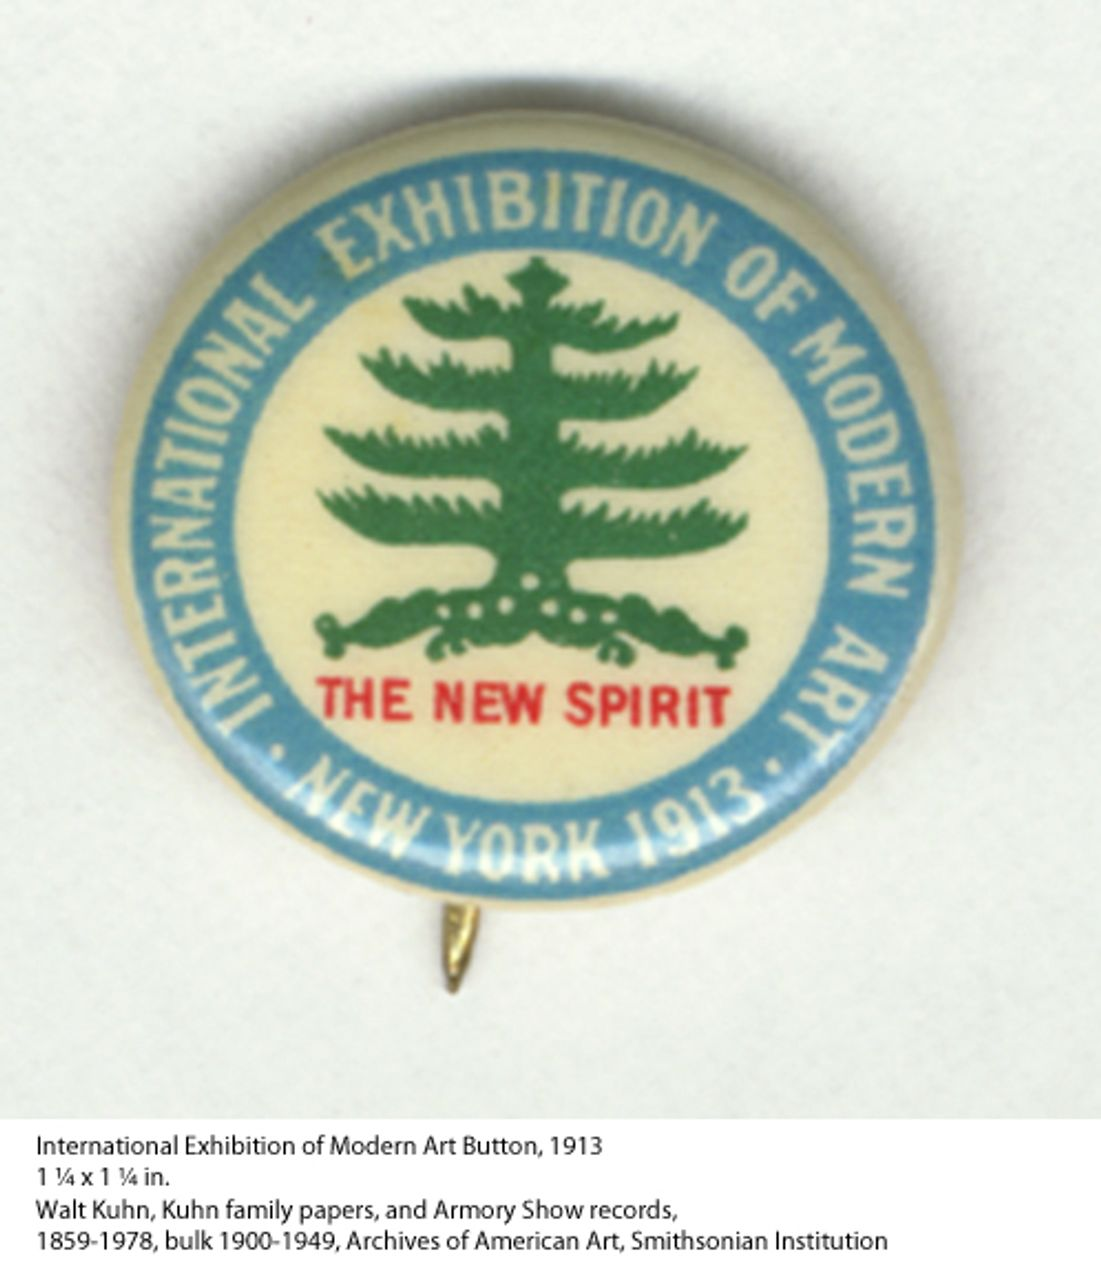 International Exhibition of Modern Art Button